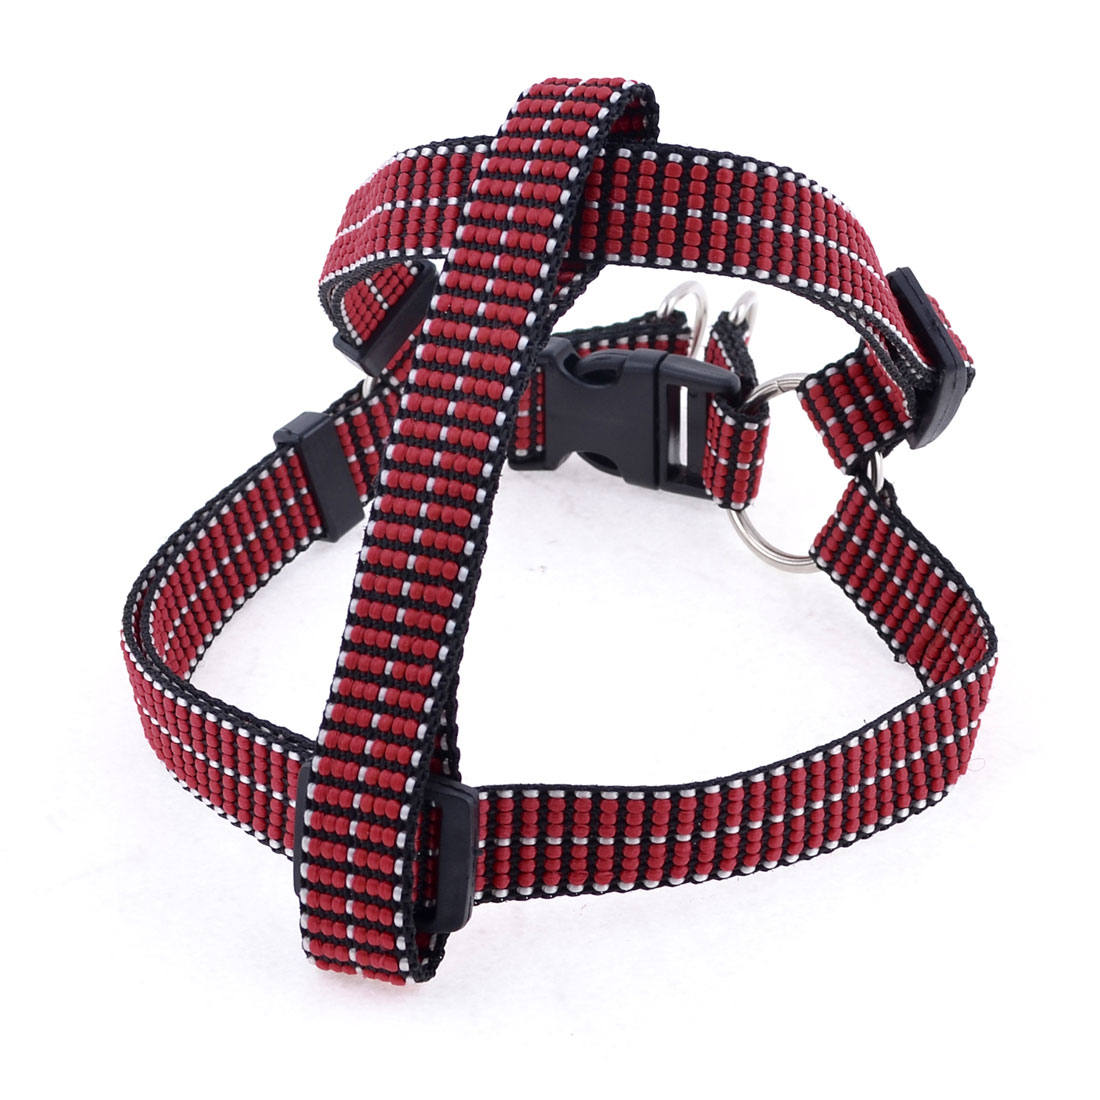 Red Black Adjustable Collar Flat Rope Dog Harness Chest Strap L